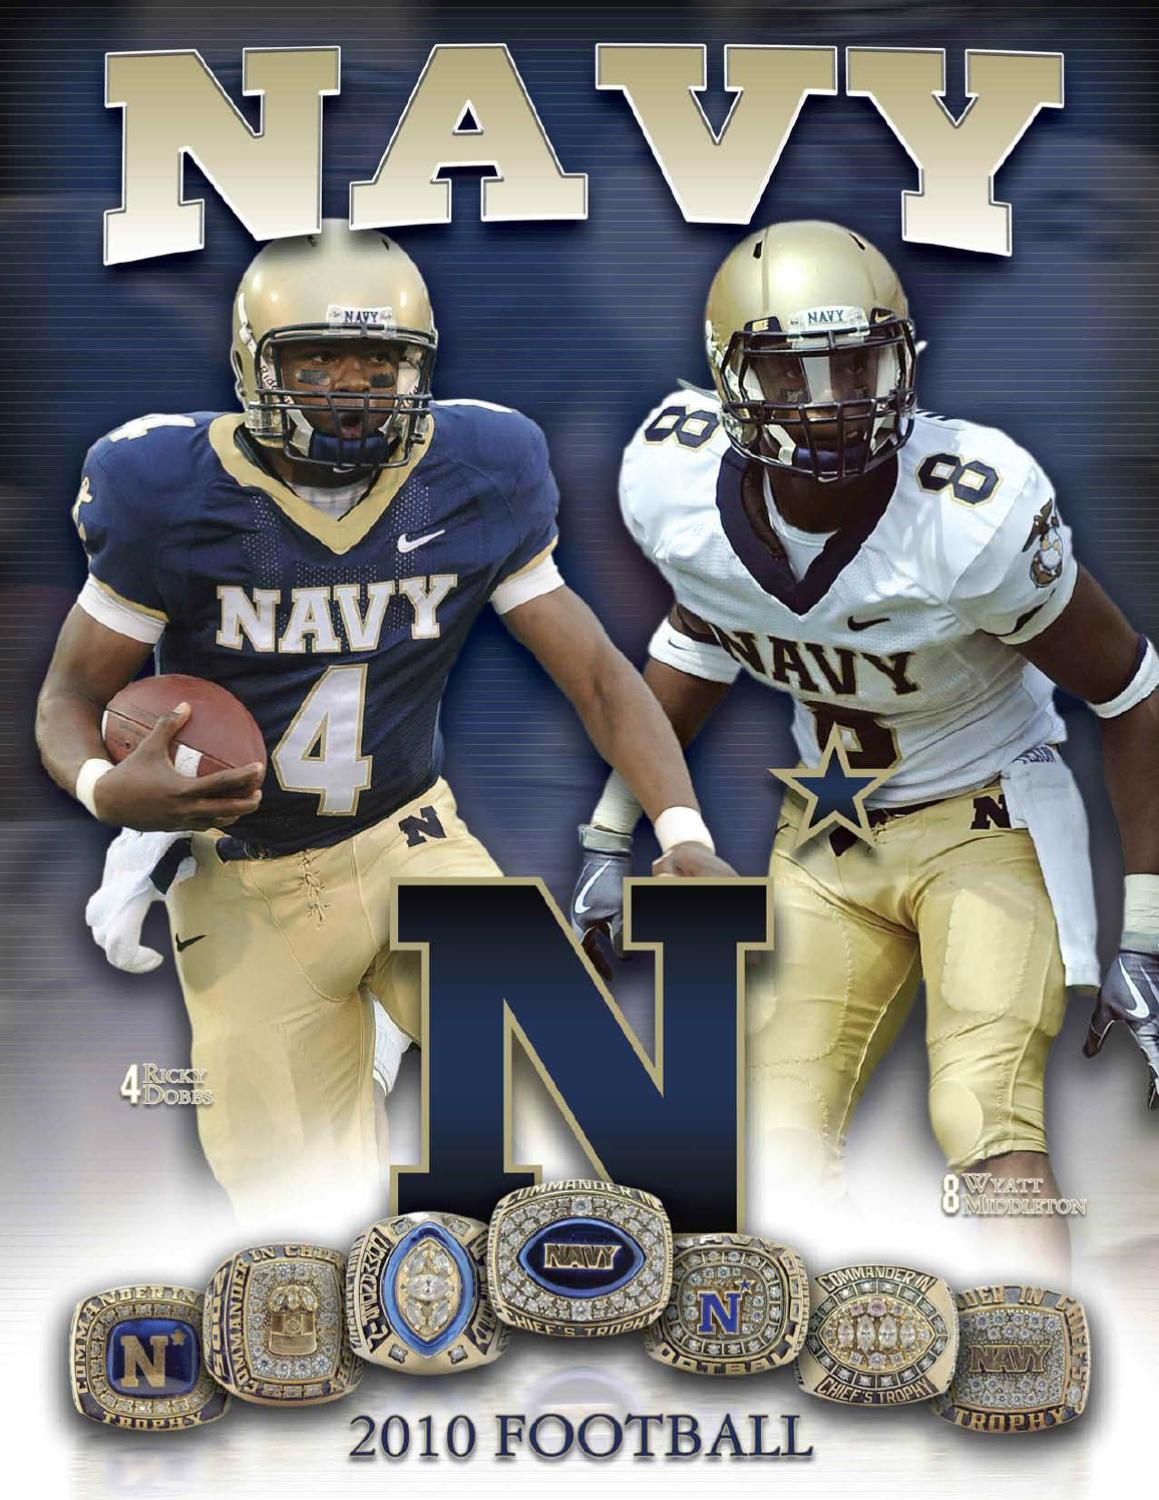 eaa0f1068 2010 Football Guide by Naval Academy Athletic Association - issuu